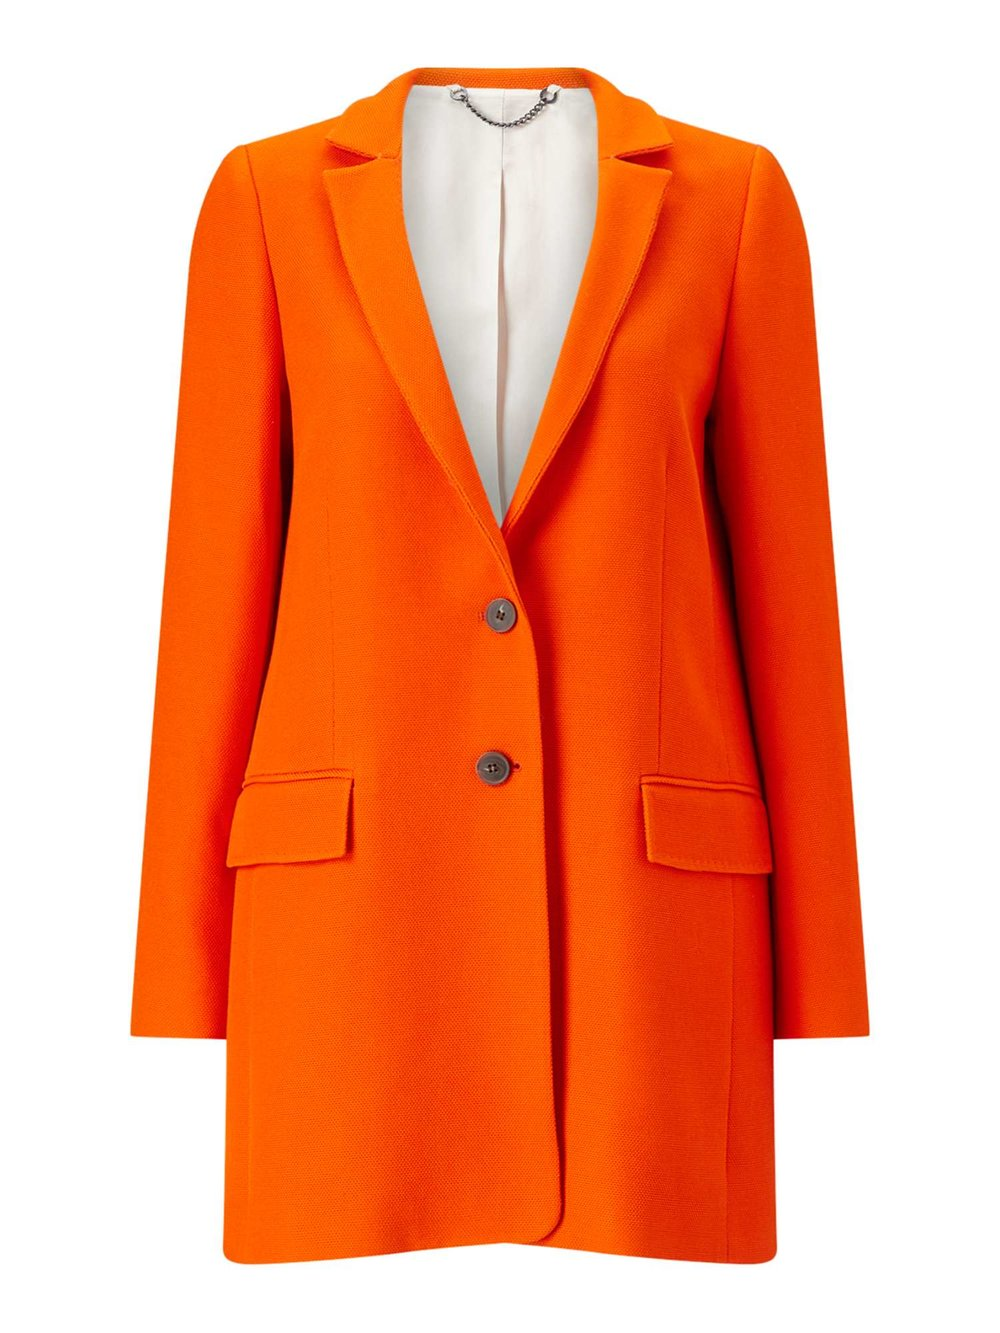 Jigsaw_orange coat.jpg